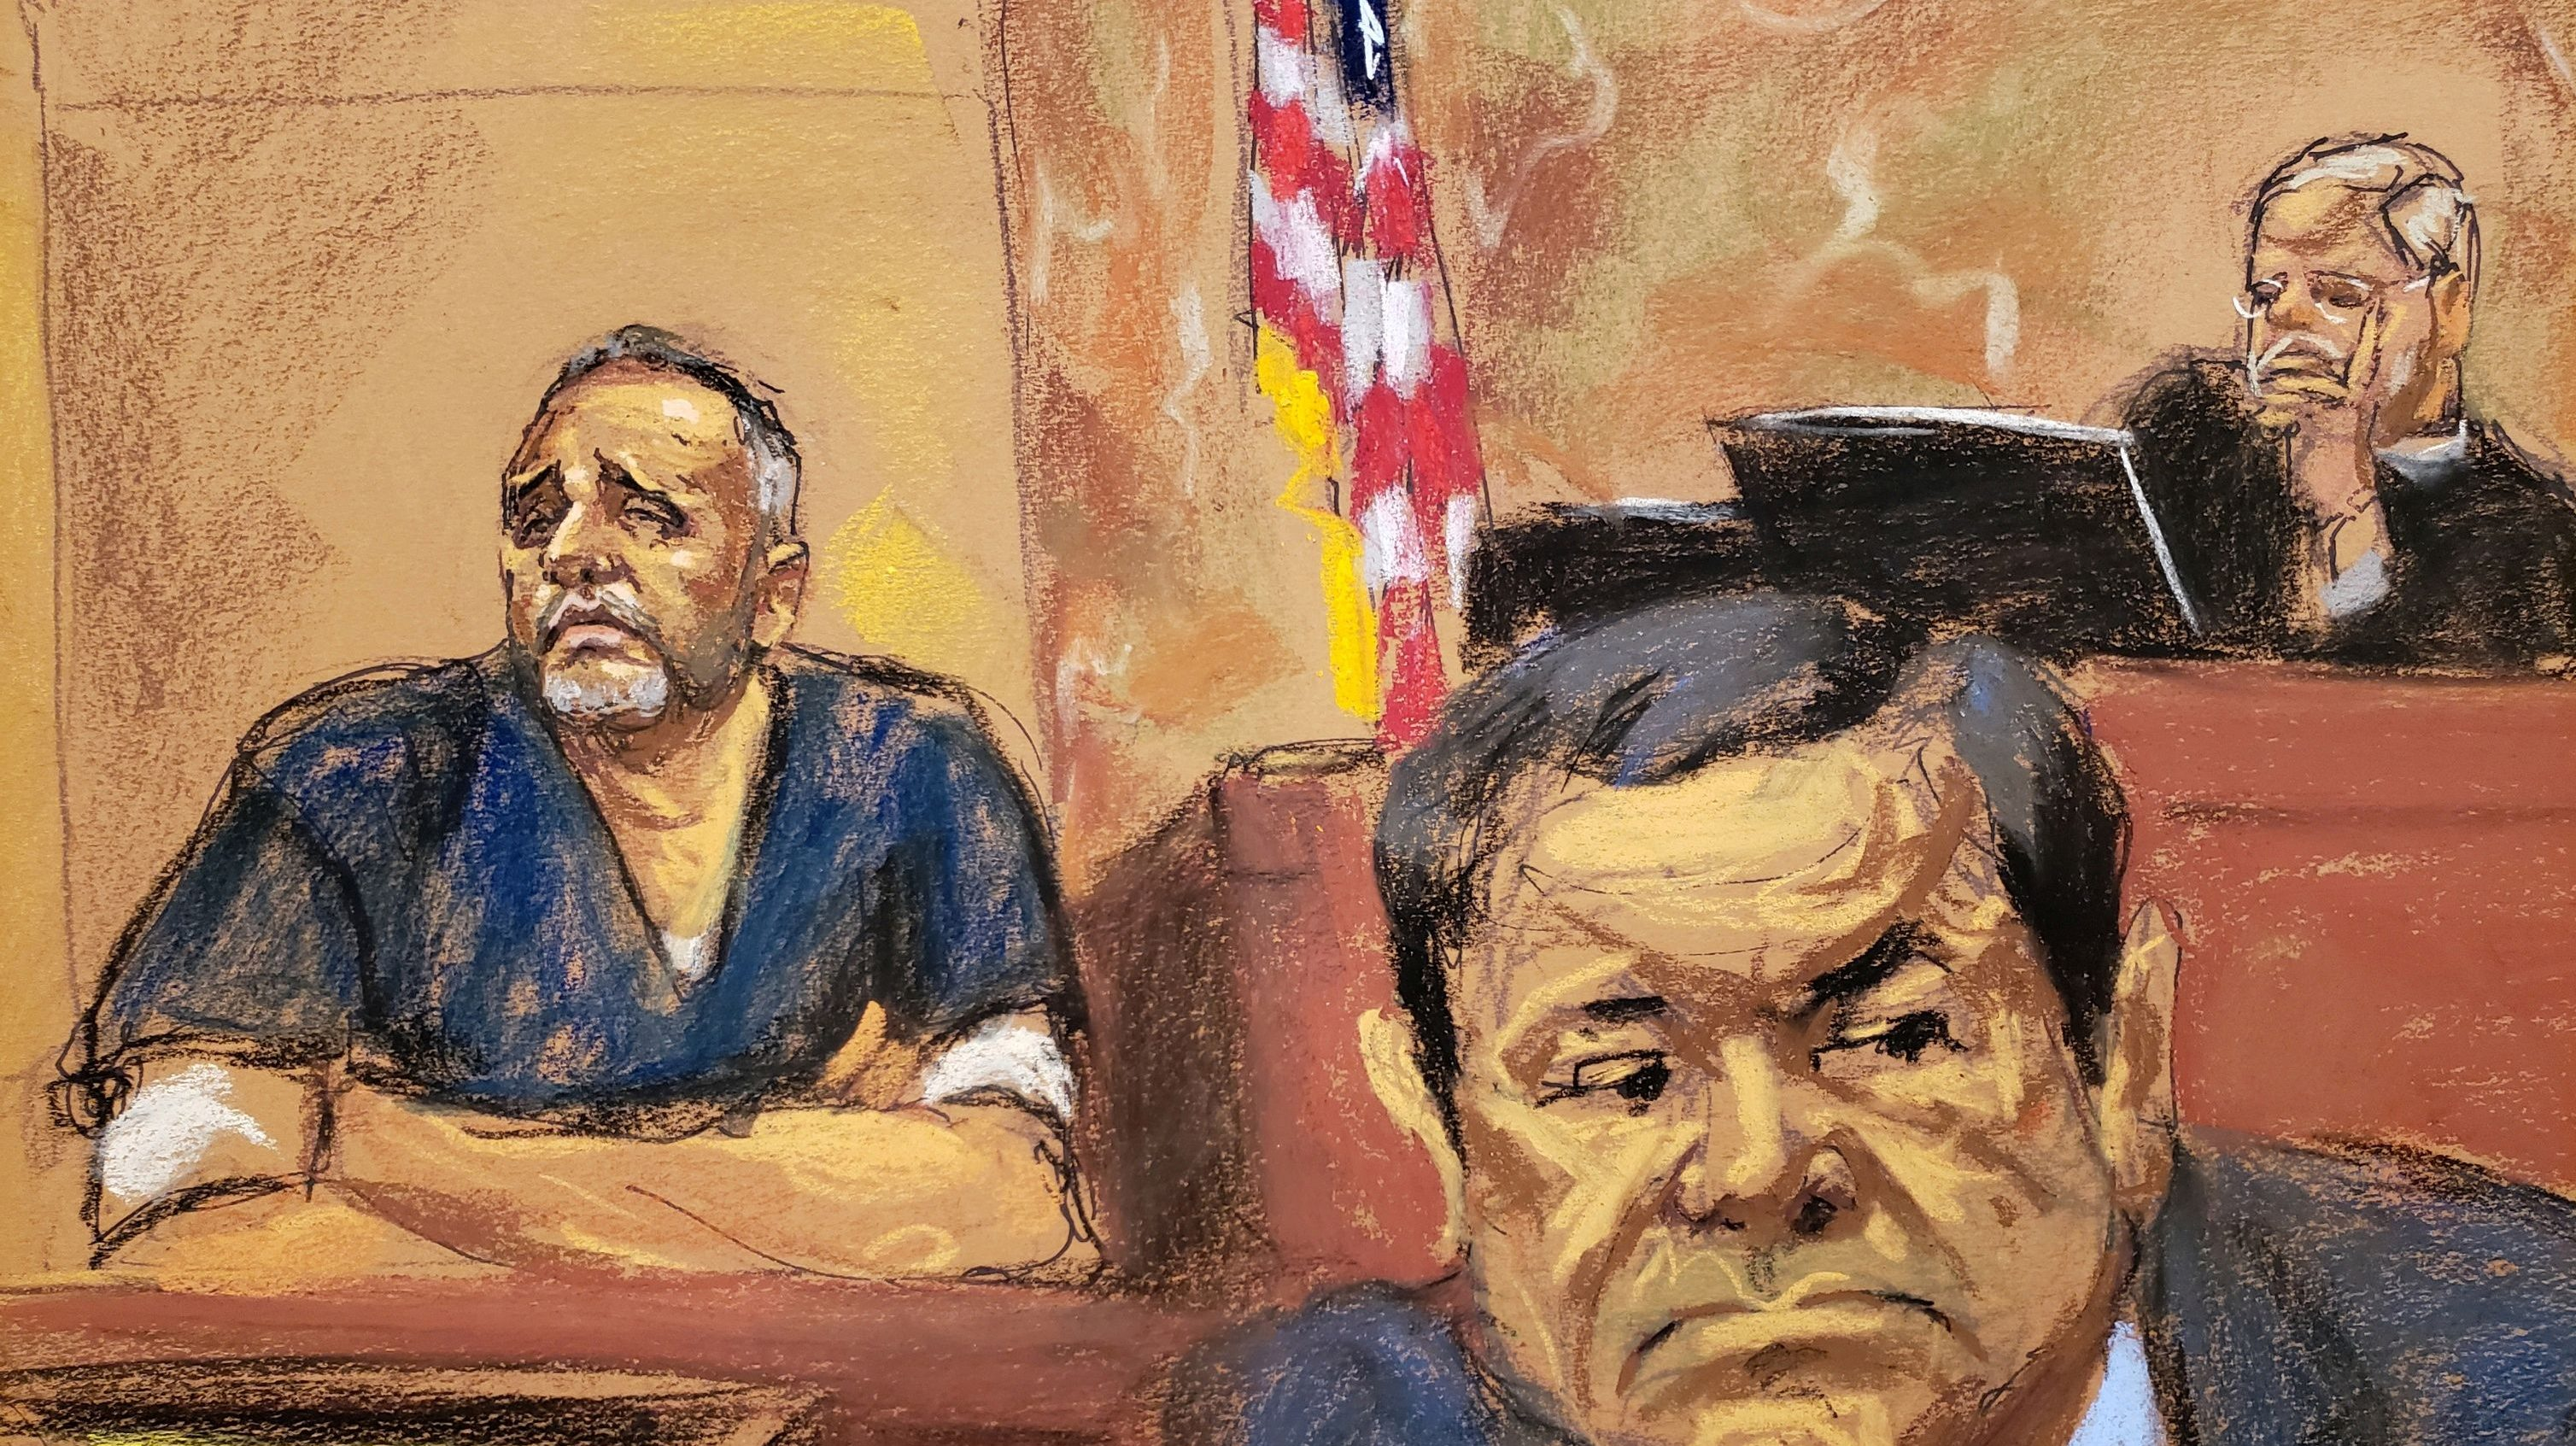 Alex Cifuentes (L), a close associate of the accused Mexican drug lord Joaquin